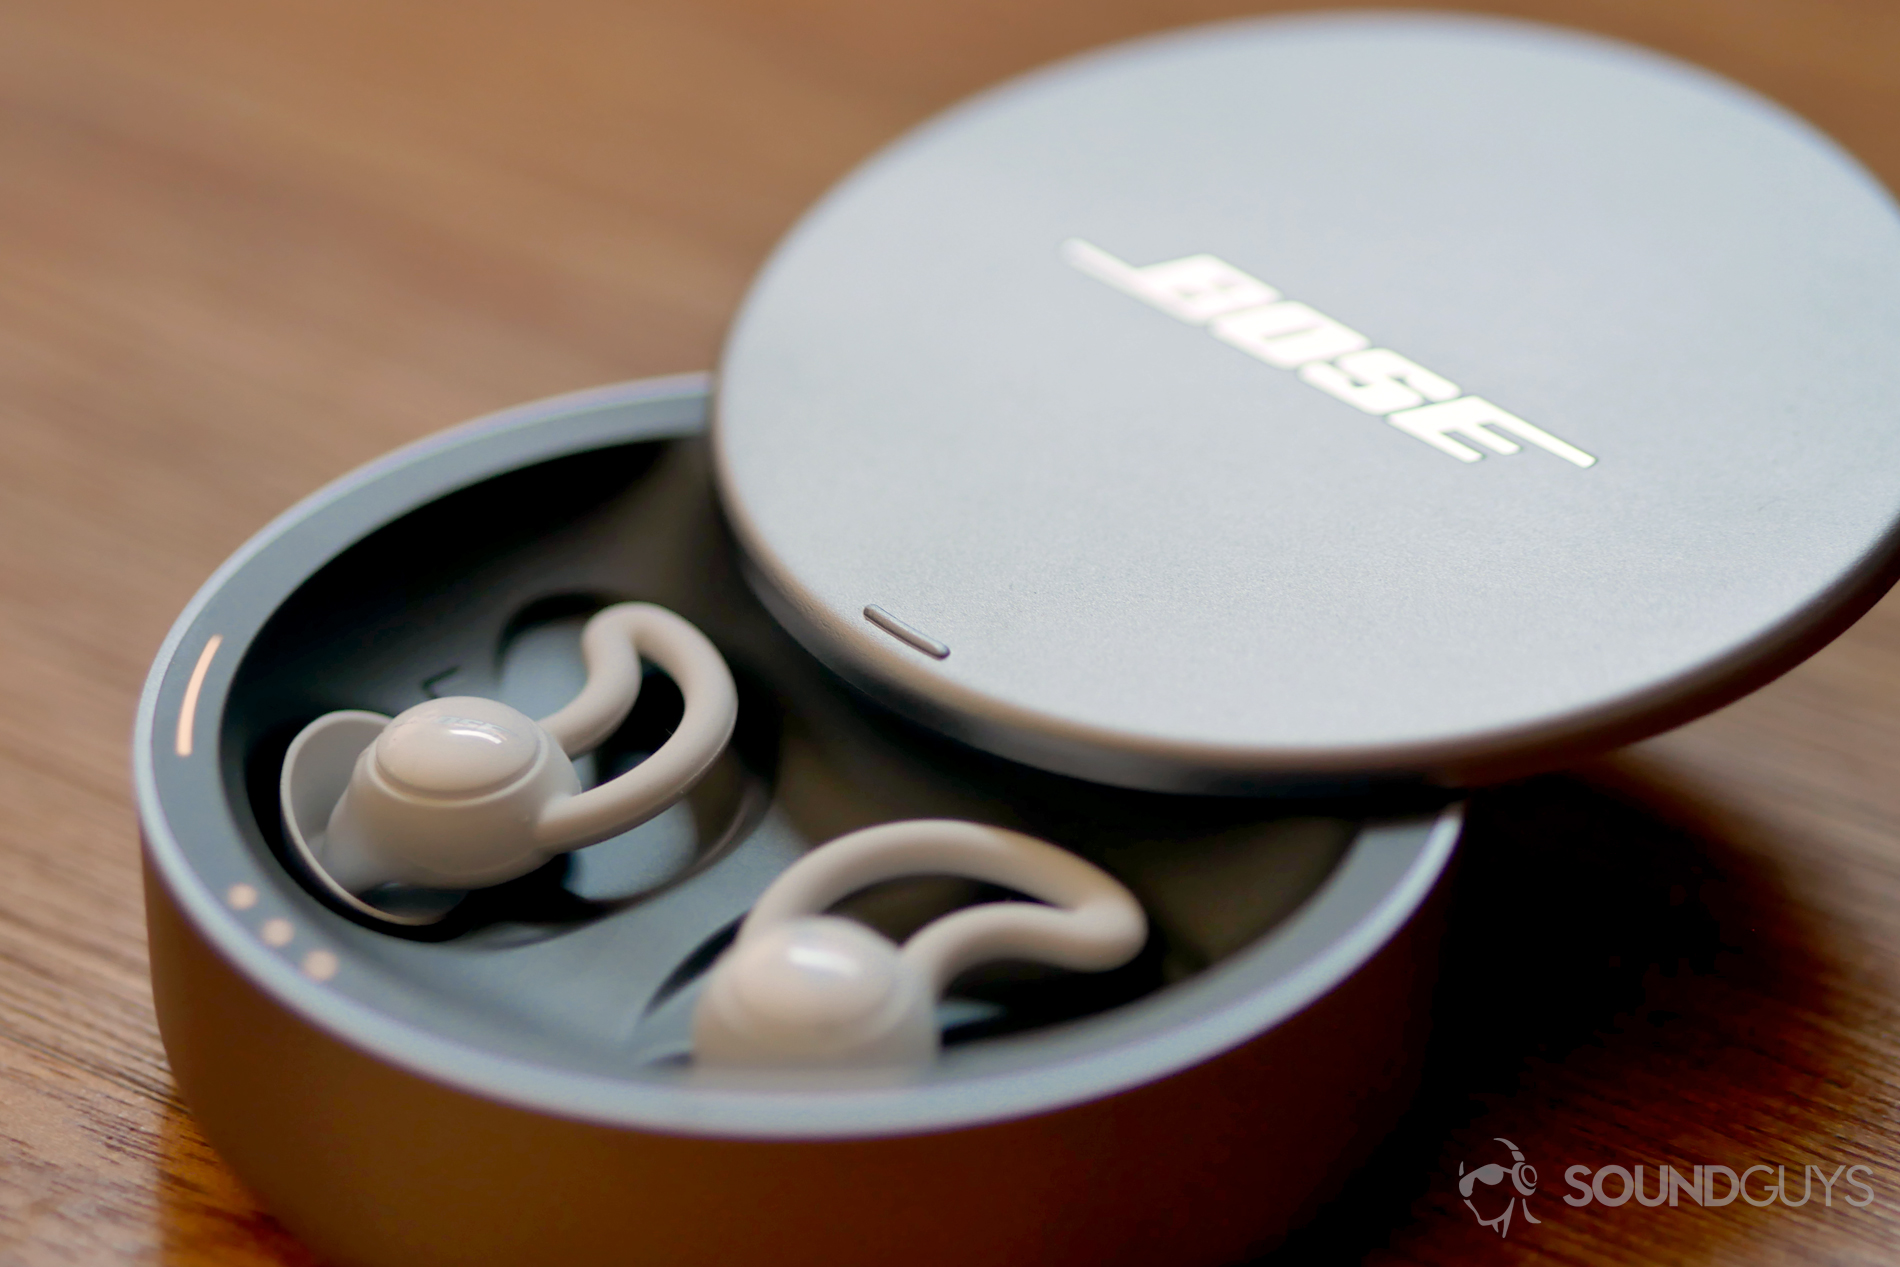 bose-sleepbuds-charging-case.jpg